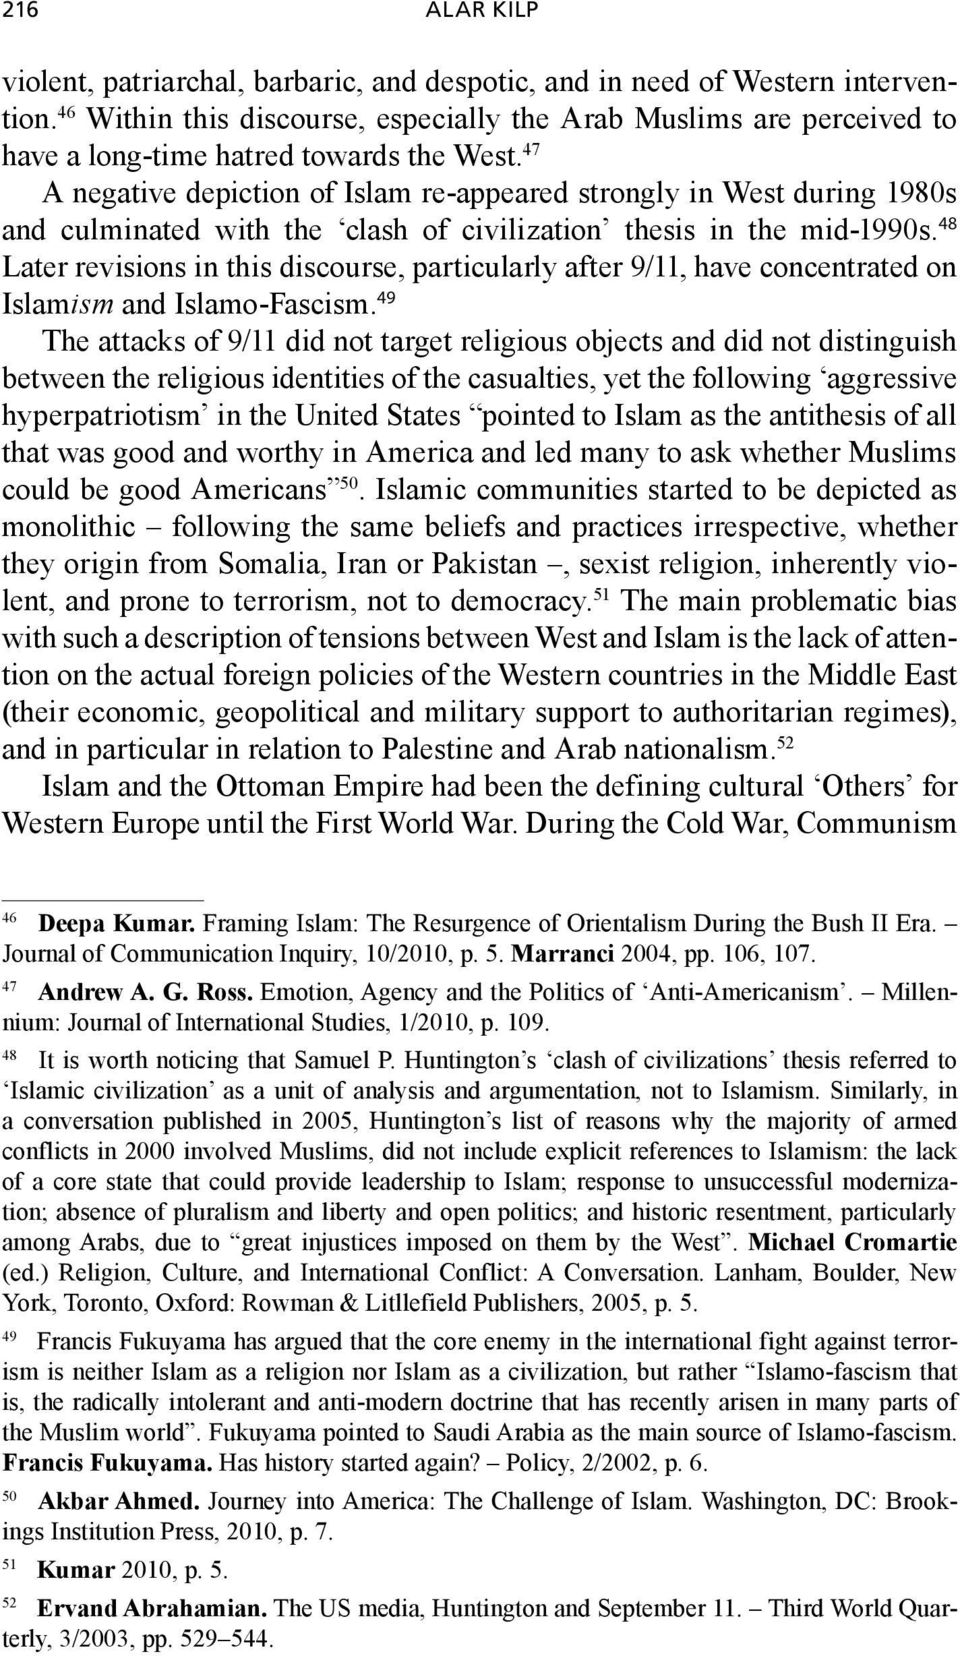 47 A negative depiction of Islam re-appeared strongly in West during 1980s and culminated with the clash of civilization thesis in the mid-1990s.